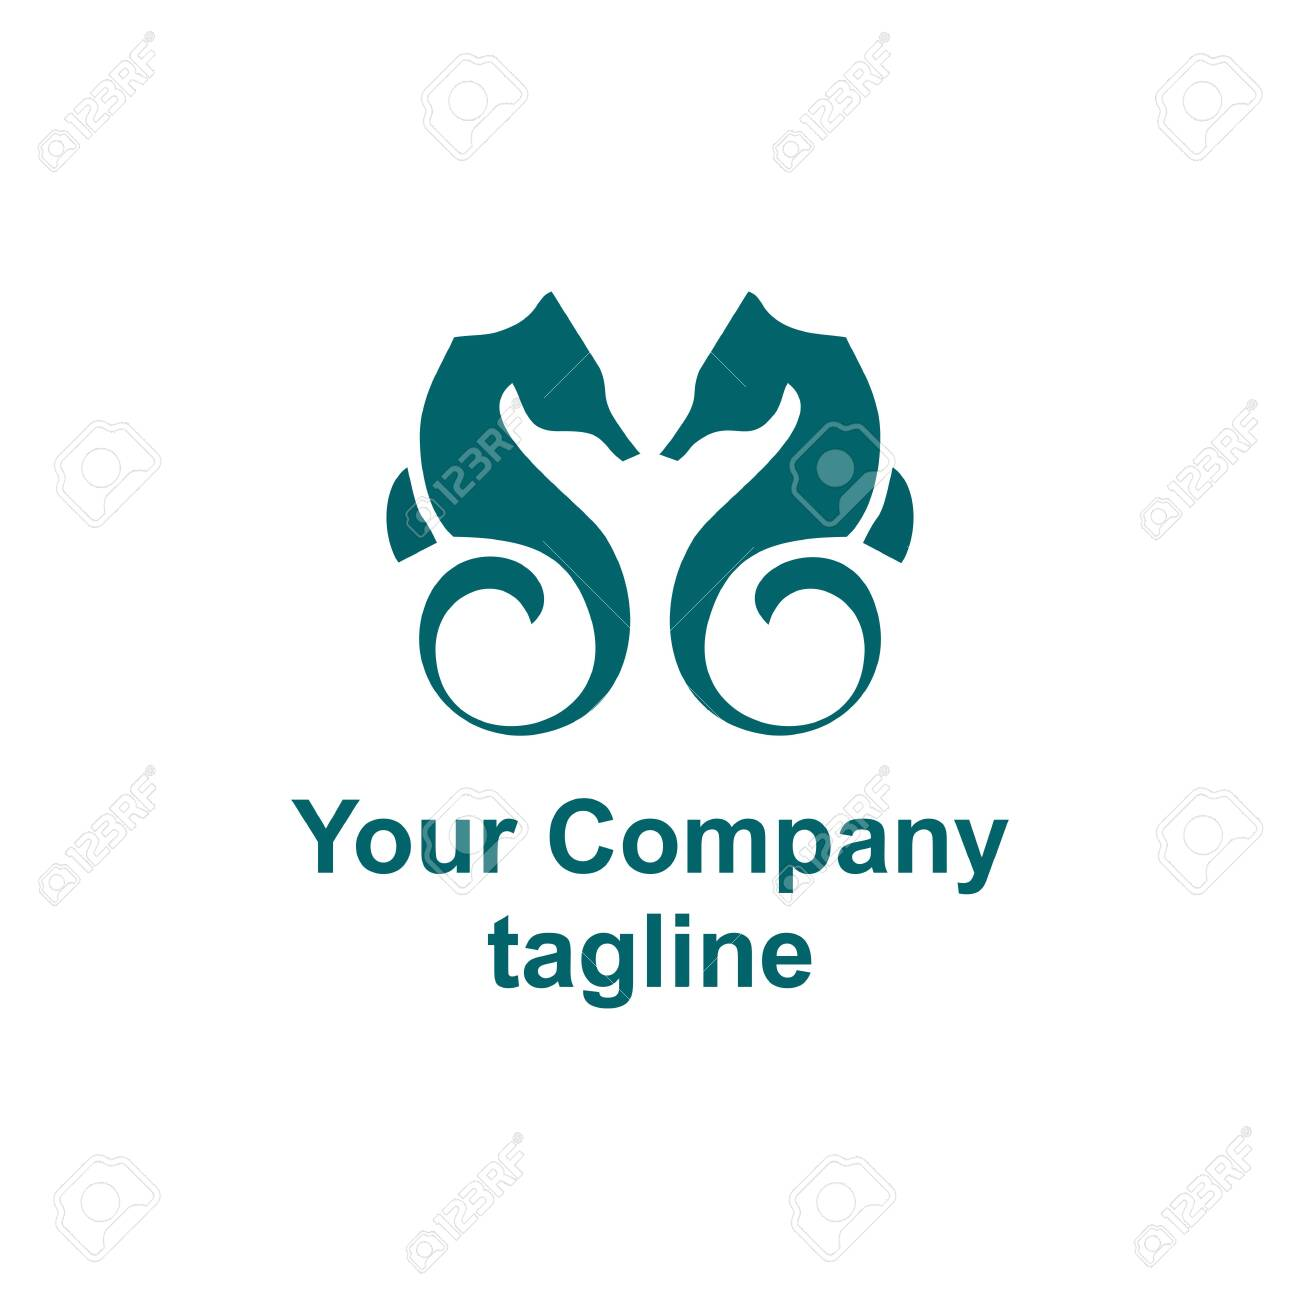 Simple Couple Sea Horse Company Vector Logo Royalty Free Cliparts Vectors And Stock Illustration Image 128648984